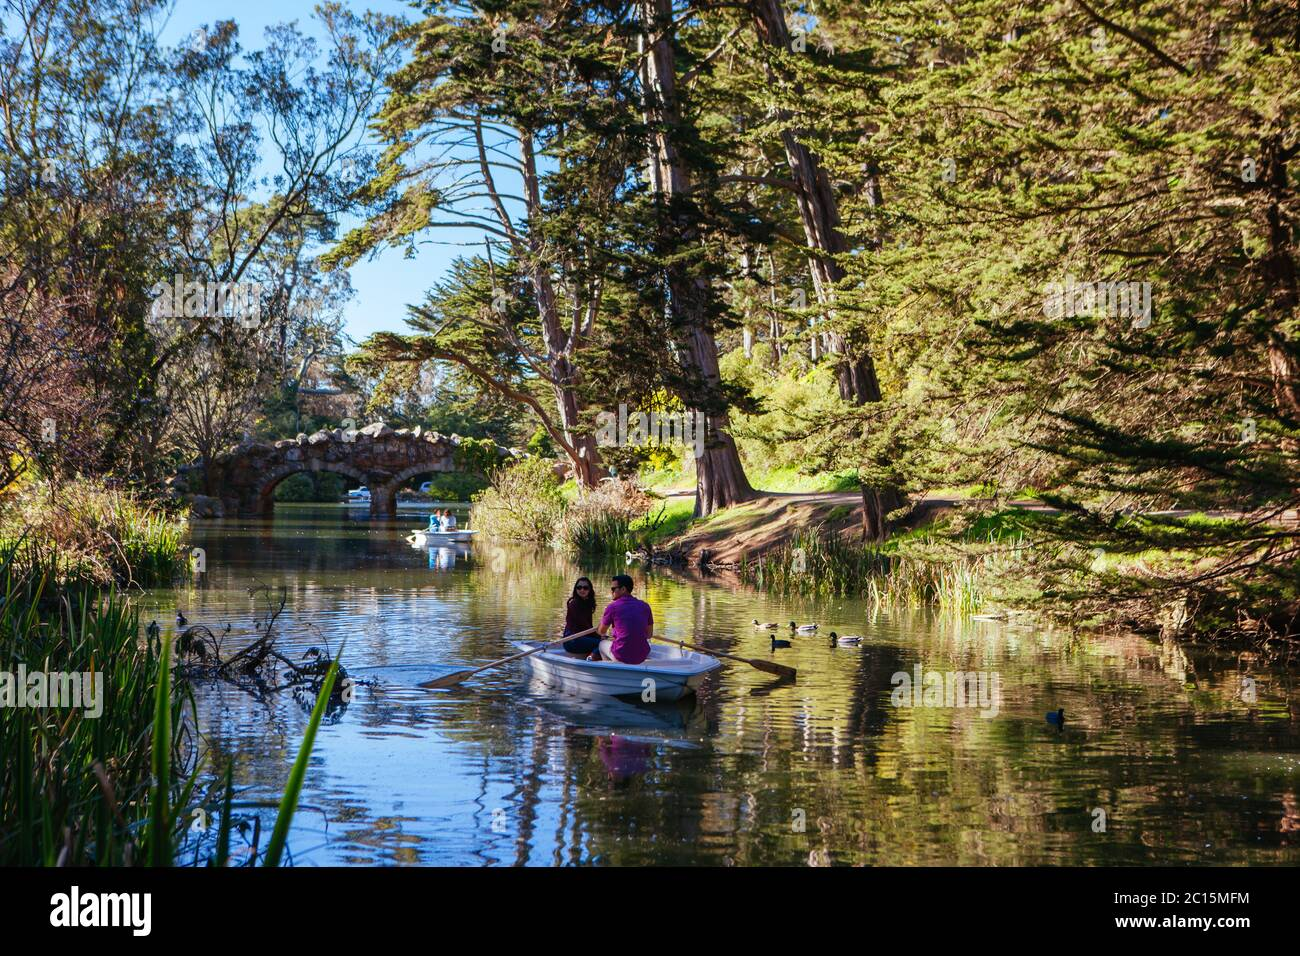 Golden Gate Park Boating in USA Stock Photo